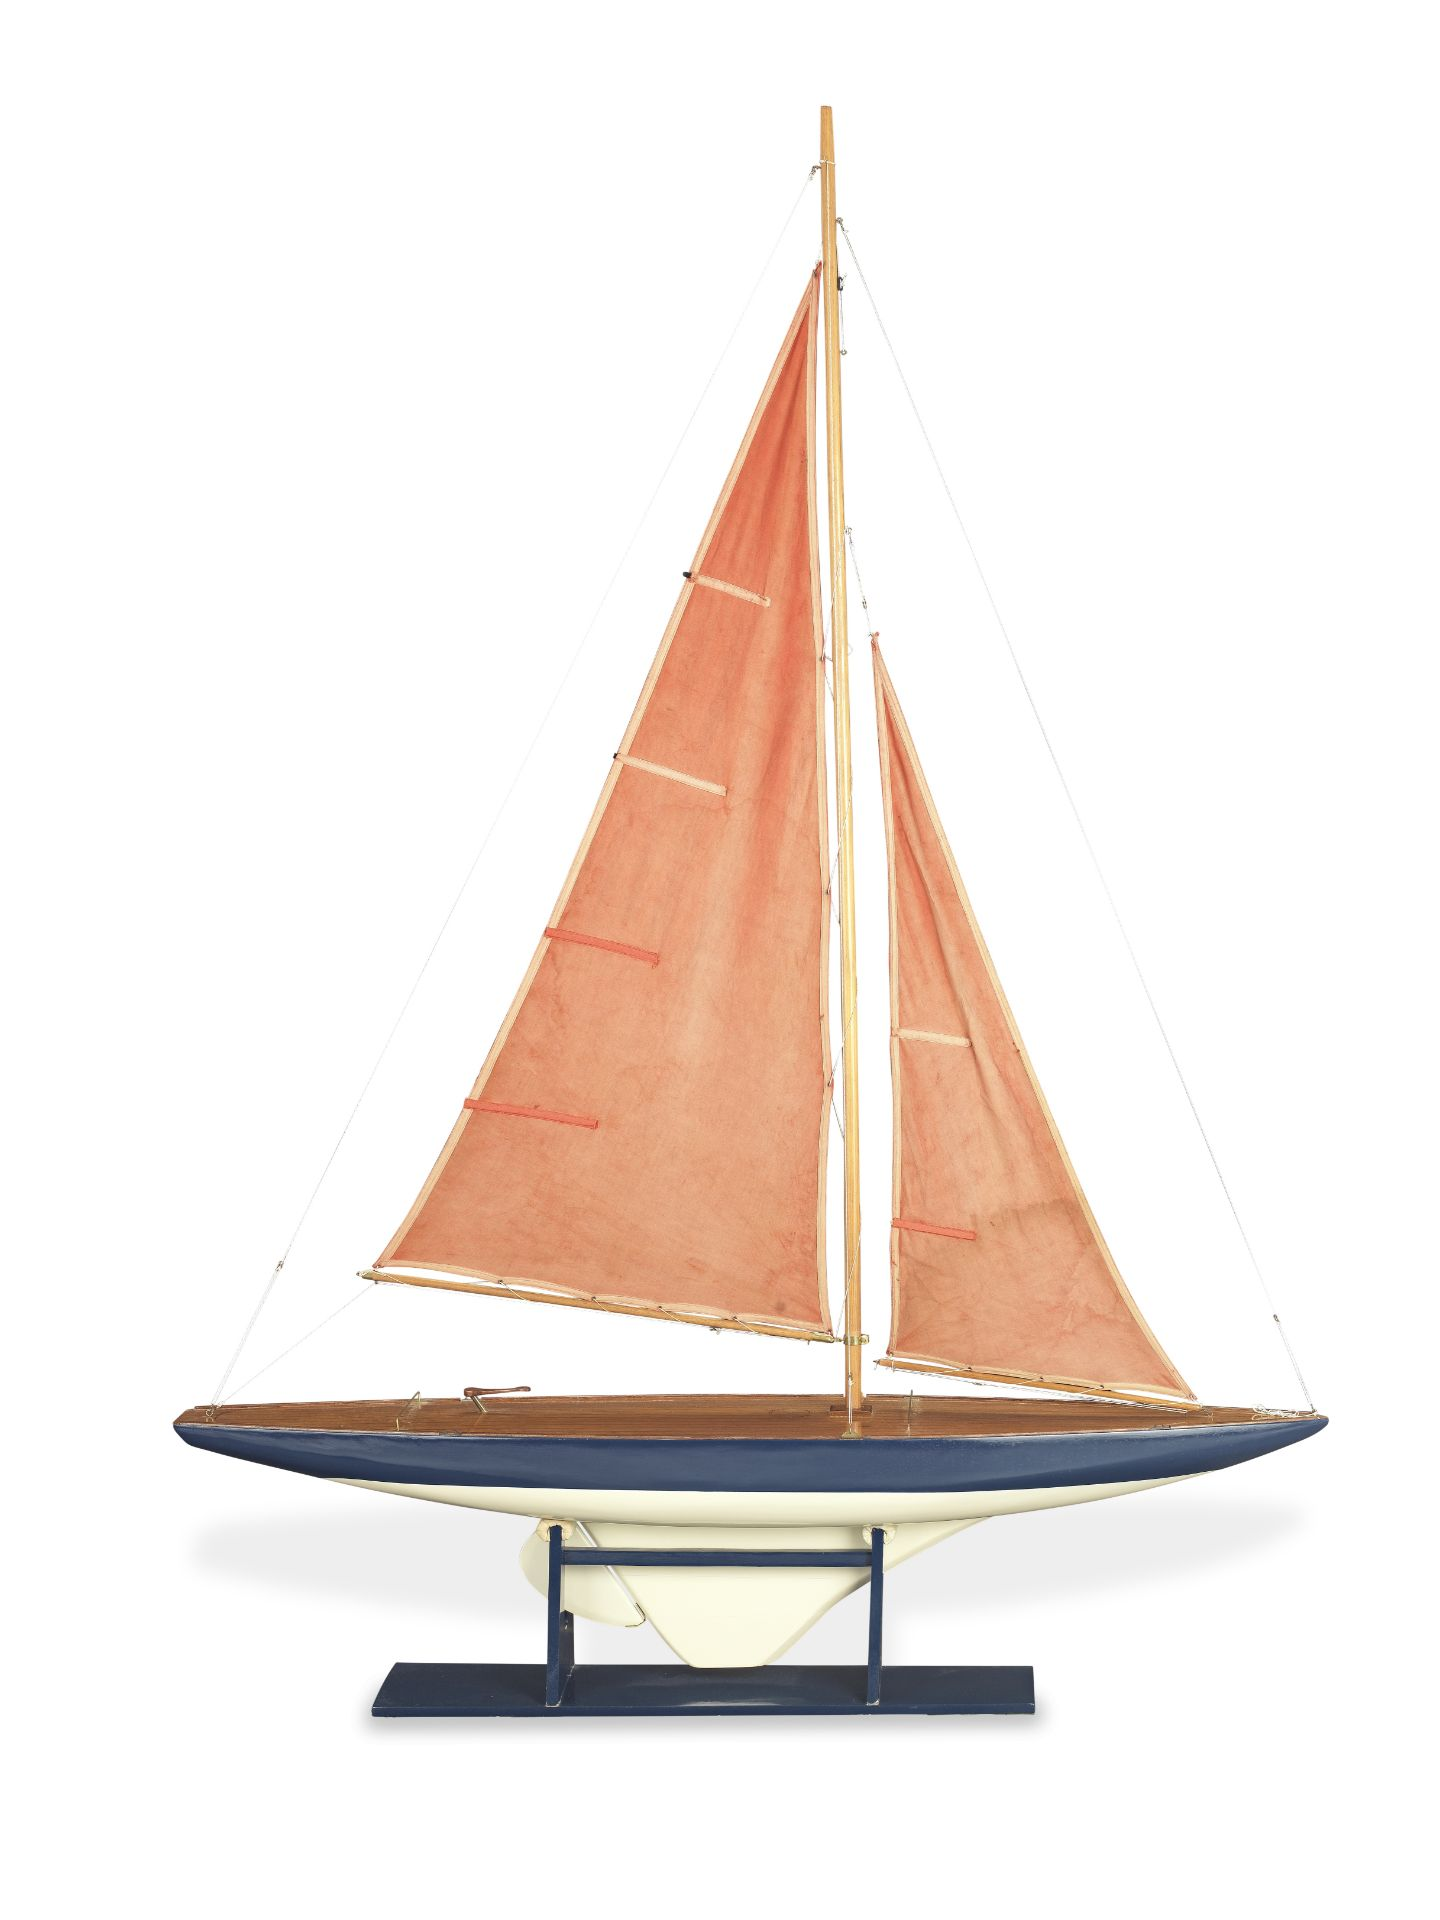 A large vintage mid 20th century pond yacht